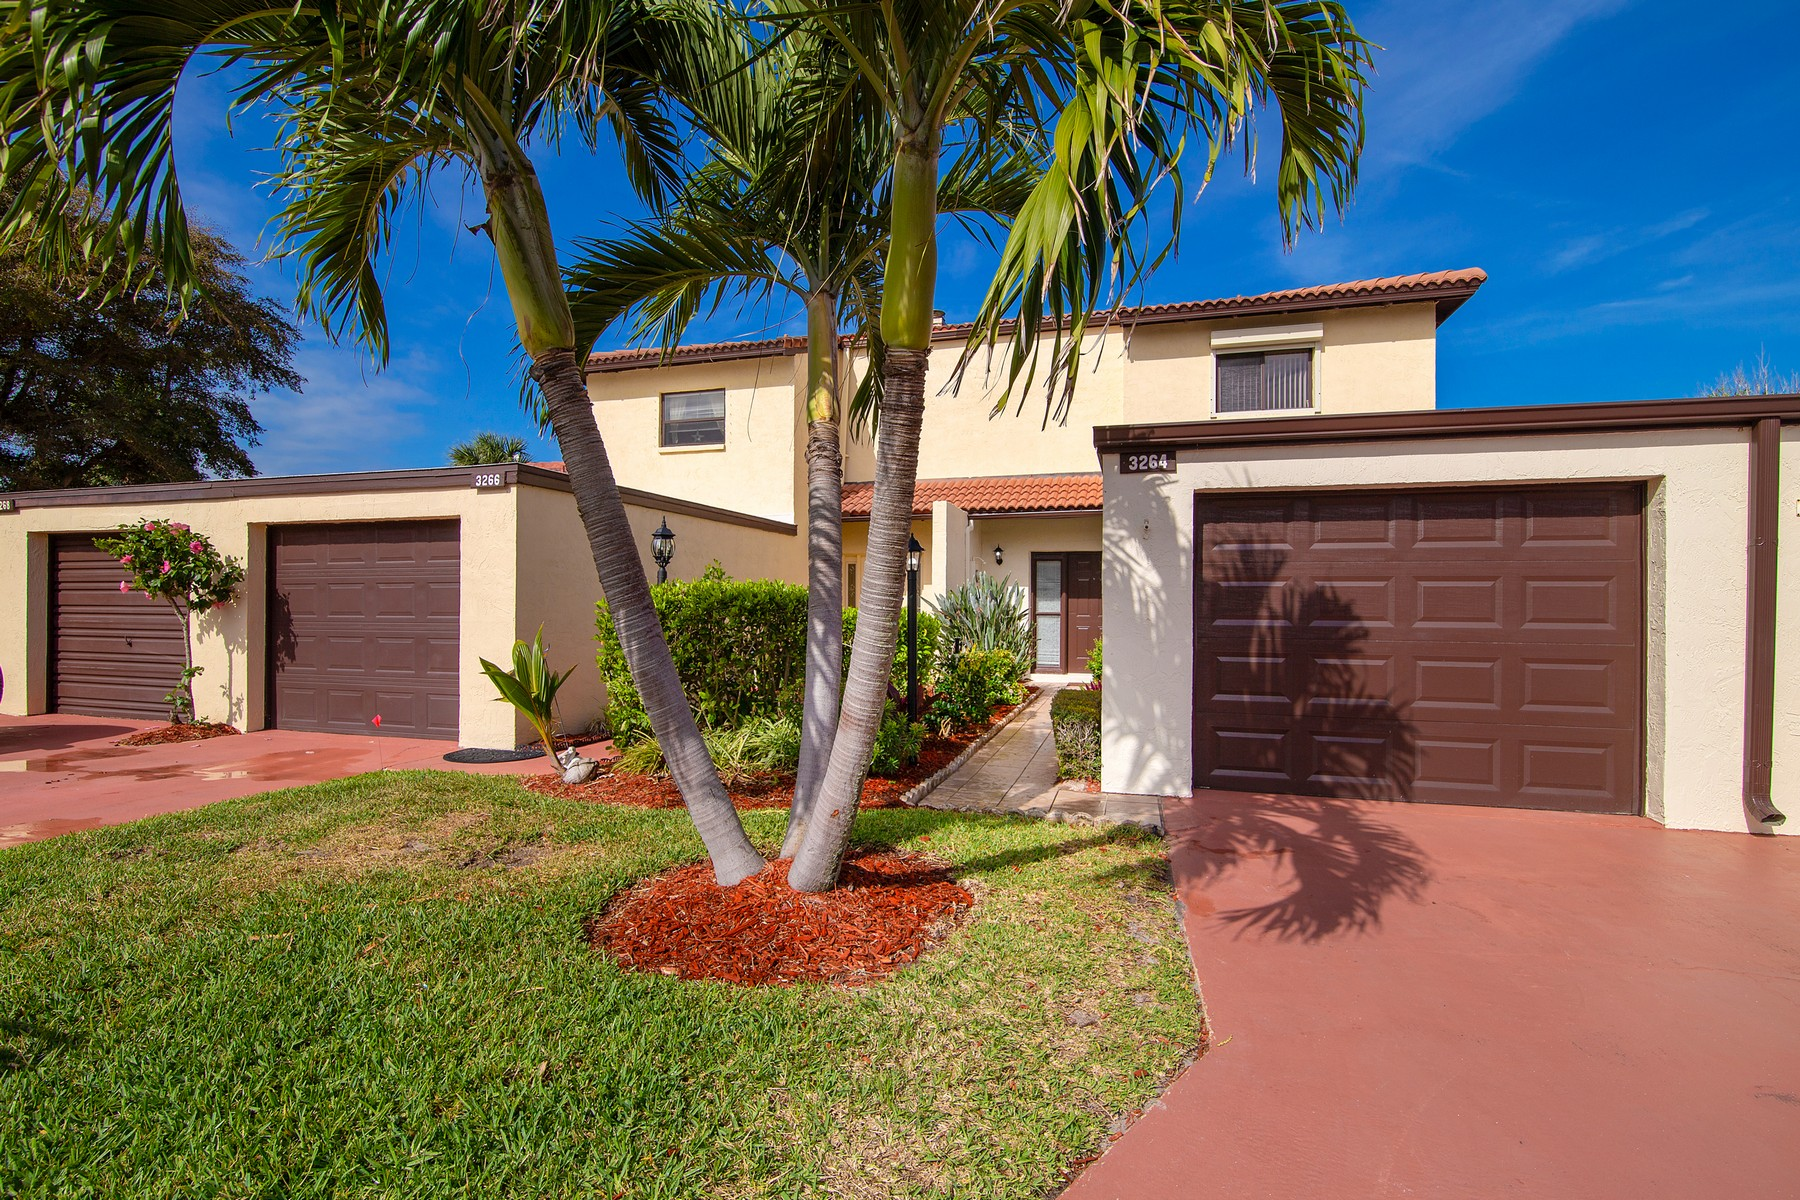 Beach Woods 3264 Sea Oats Circle Melbourne Beach, Florida 32951 Estados Unidos